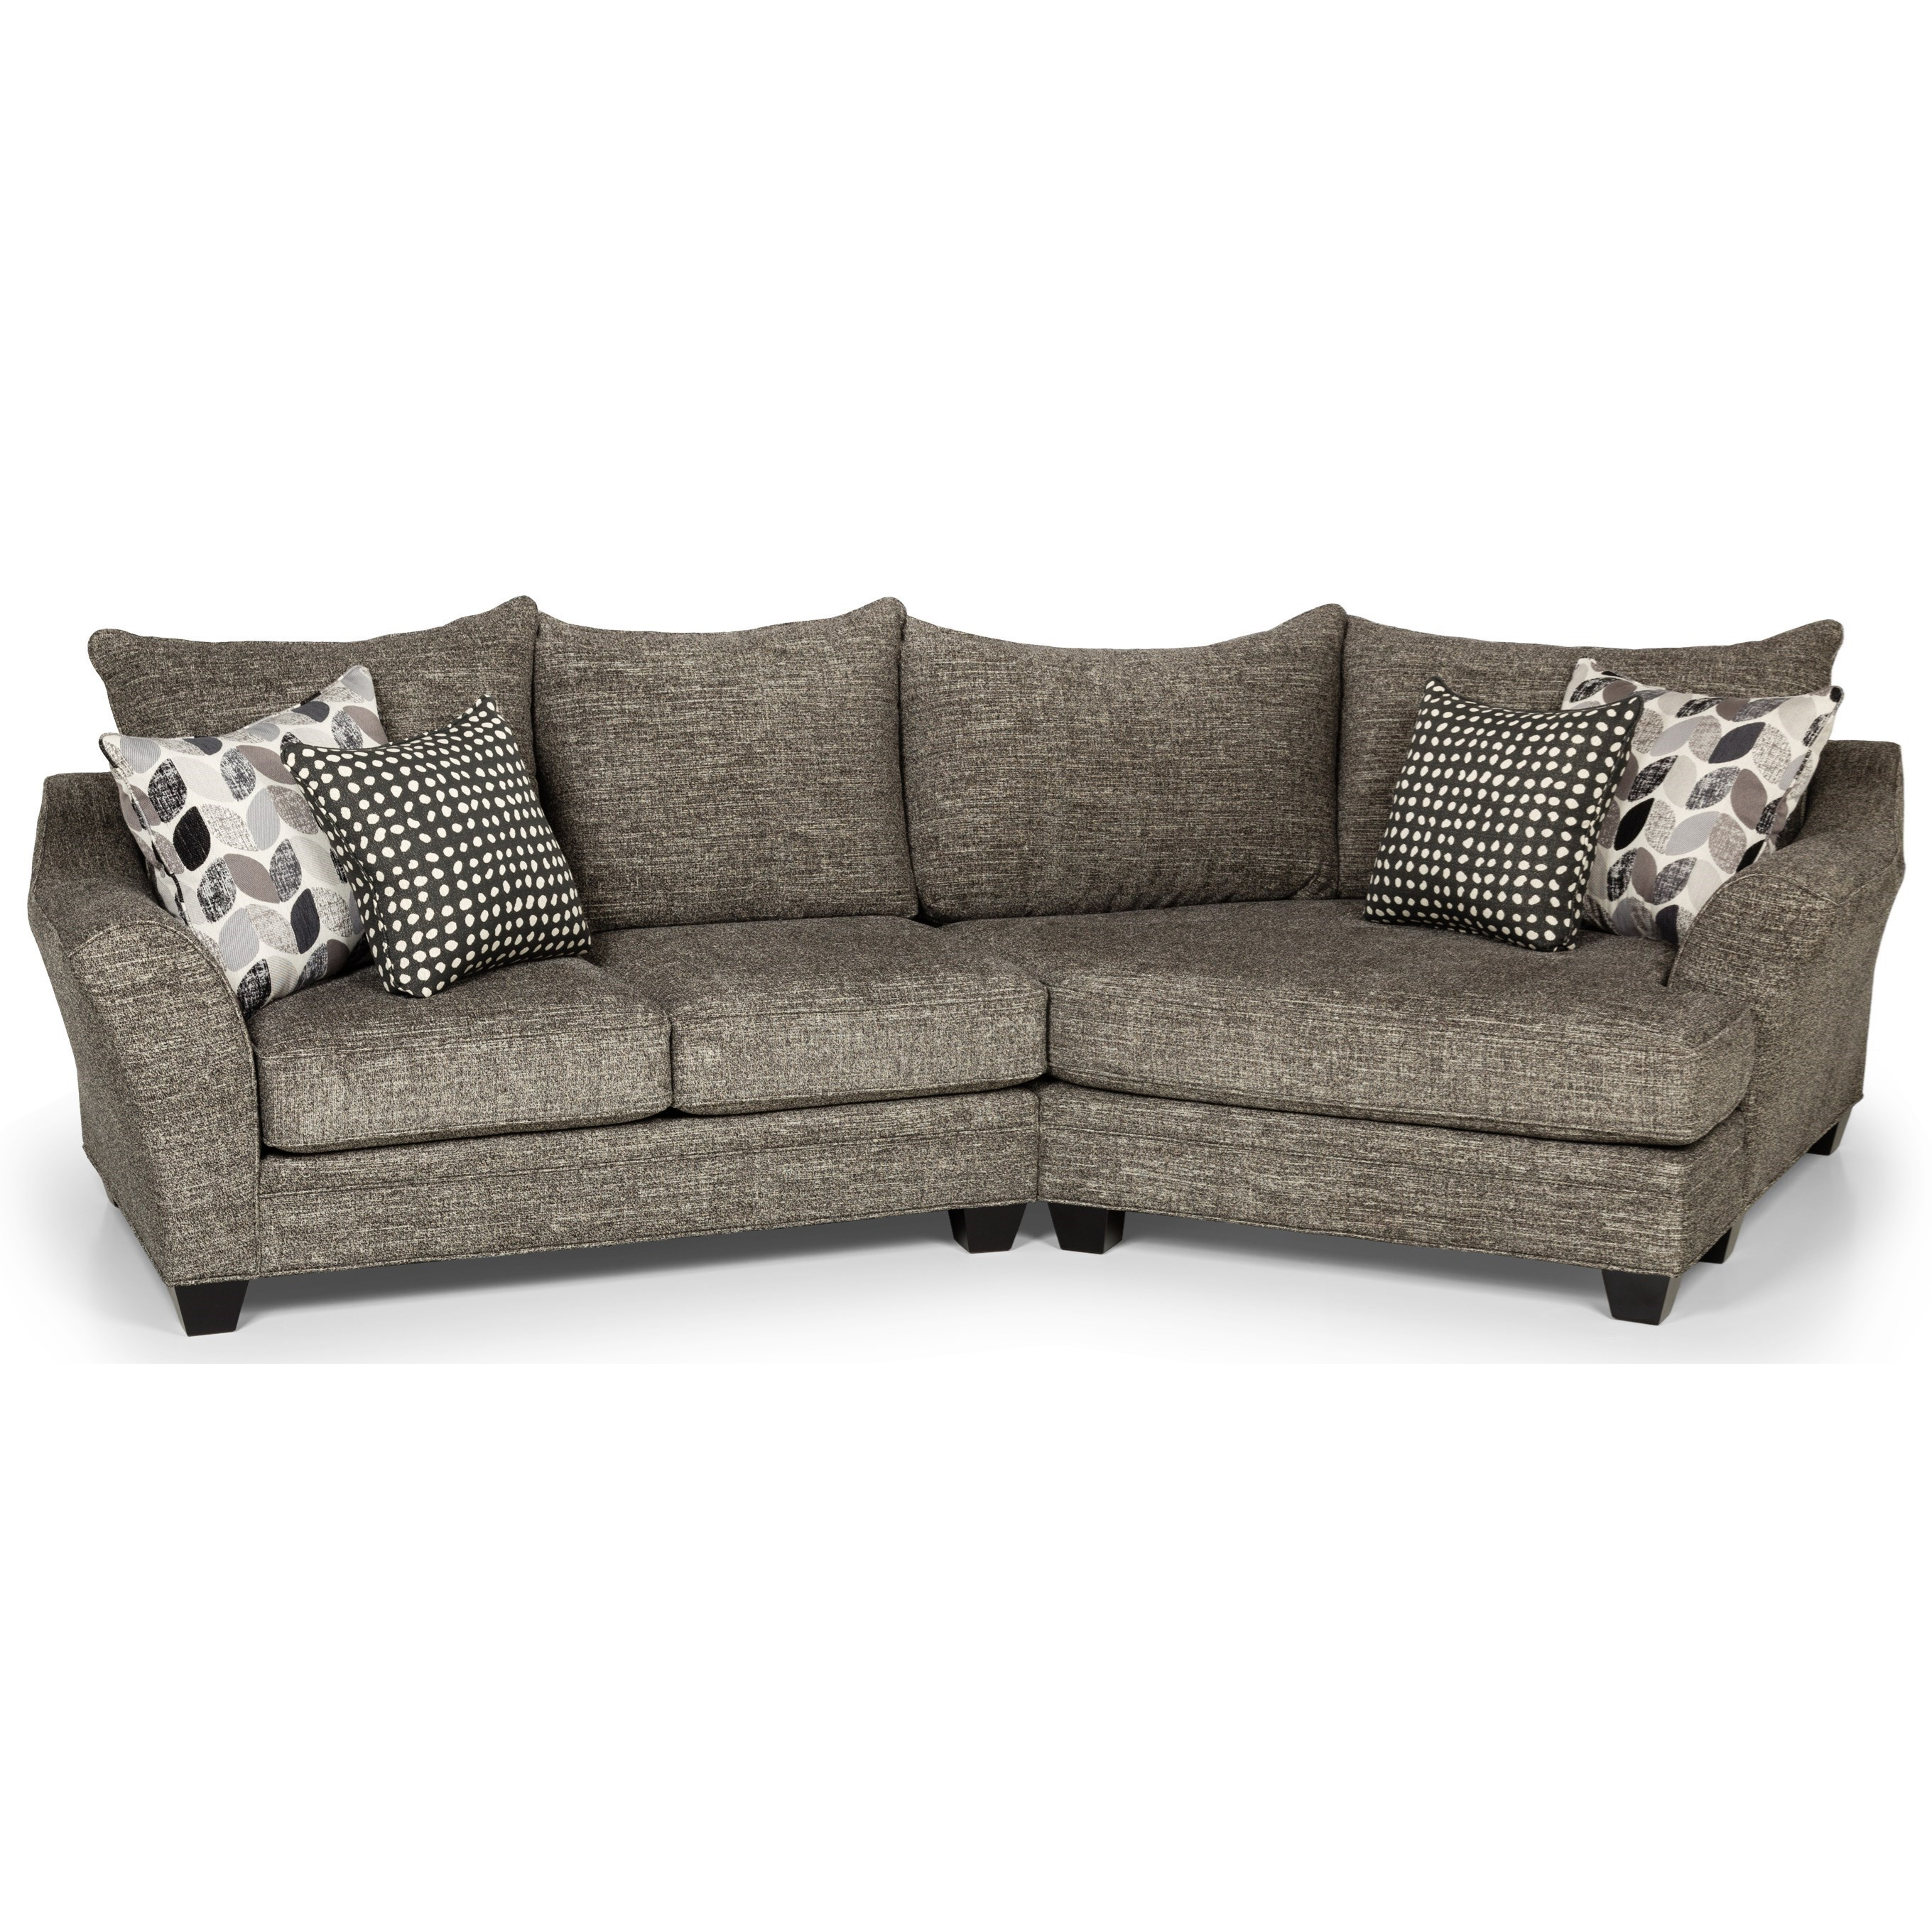 Sunset Home 372 Casual Sectional Sofa With Cuddler